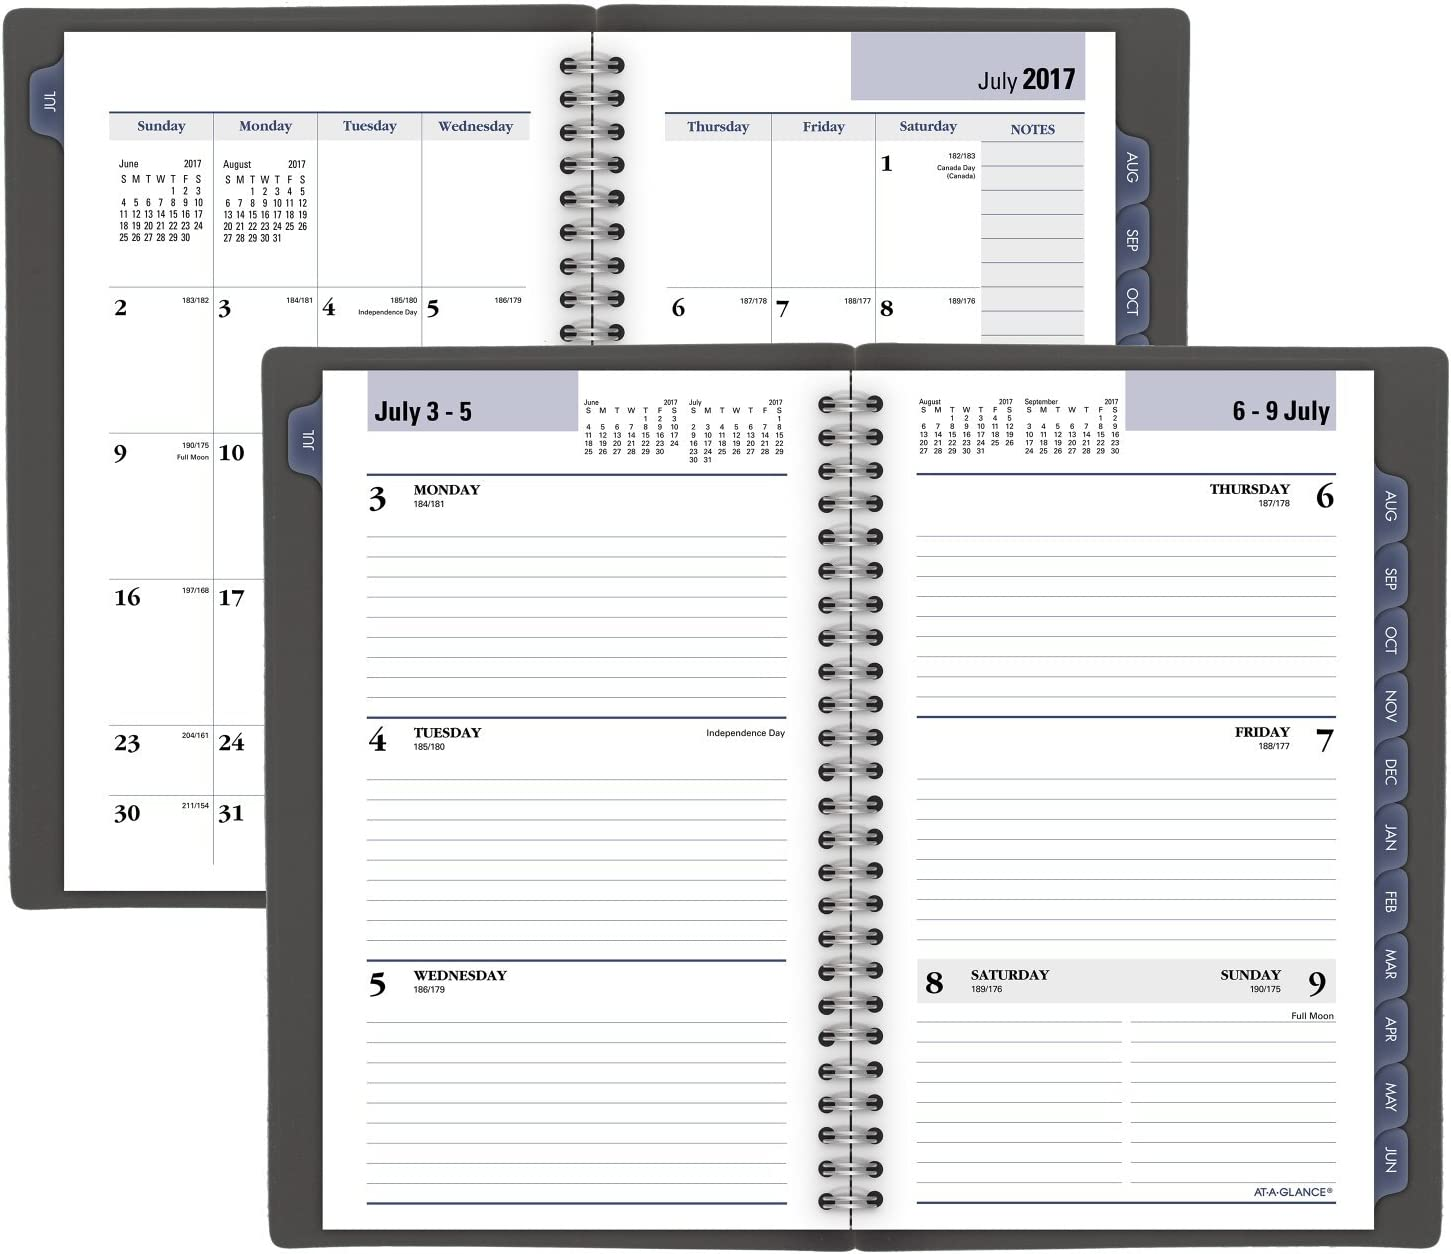 5 x 8 AYC20045 DayMinder AT-A-GLANCE Weekly /& Monthly Planner Small Charcoal Academic Planner 2020-2021